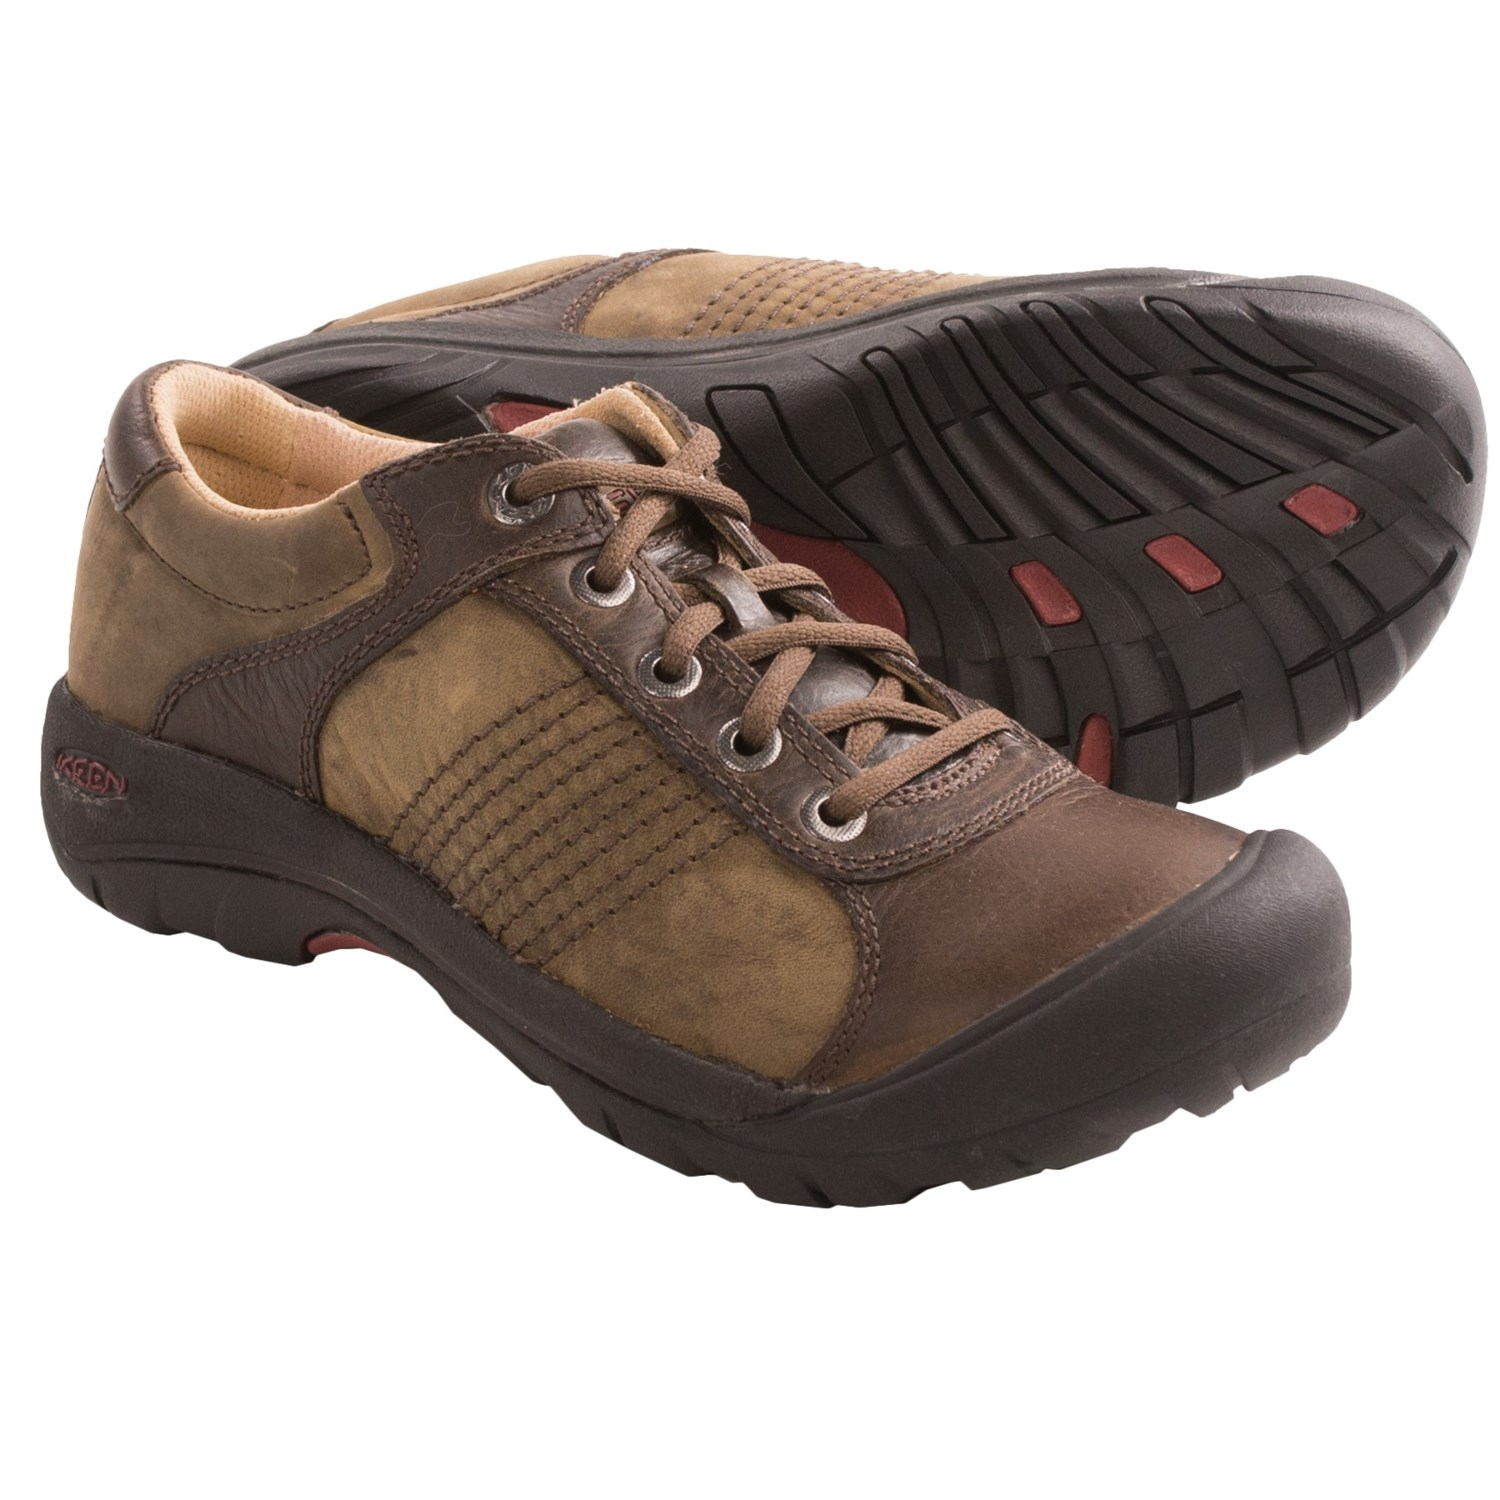 Shoes for men online Where to buy keen sandals